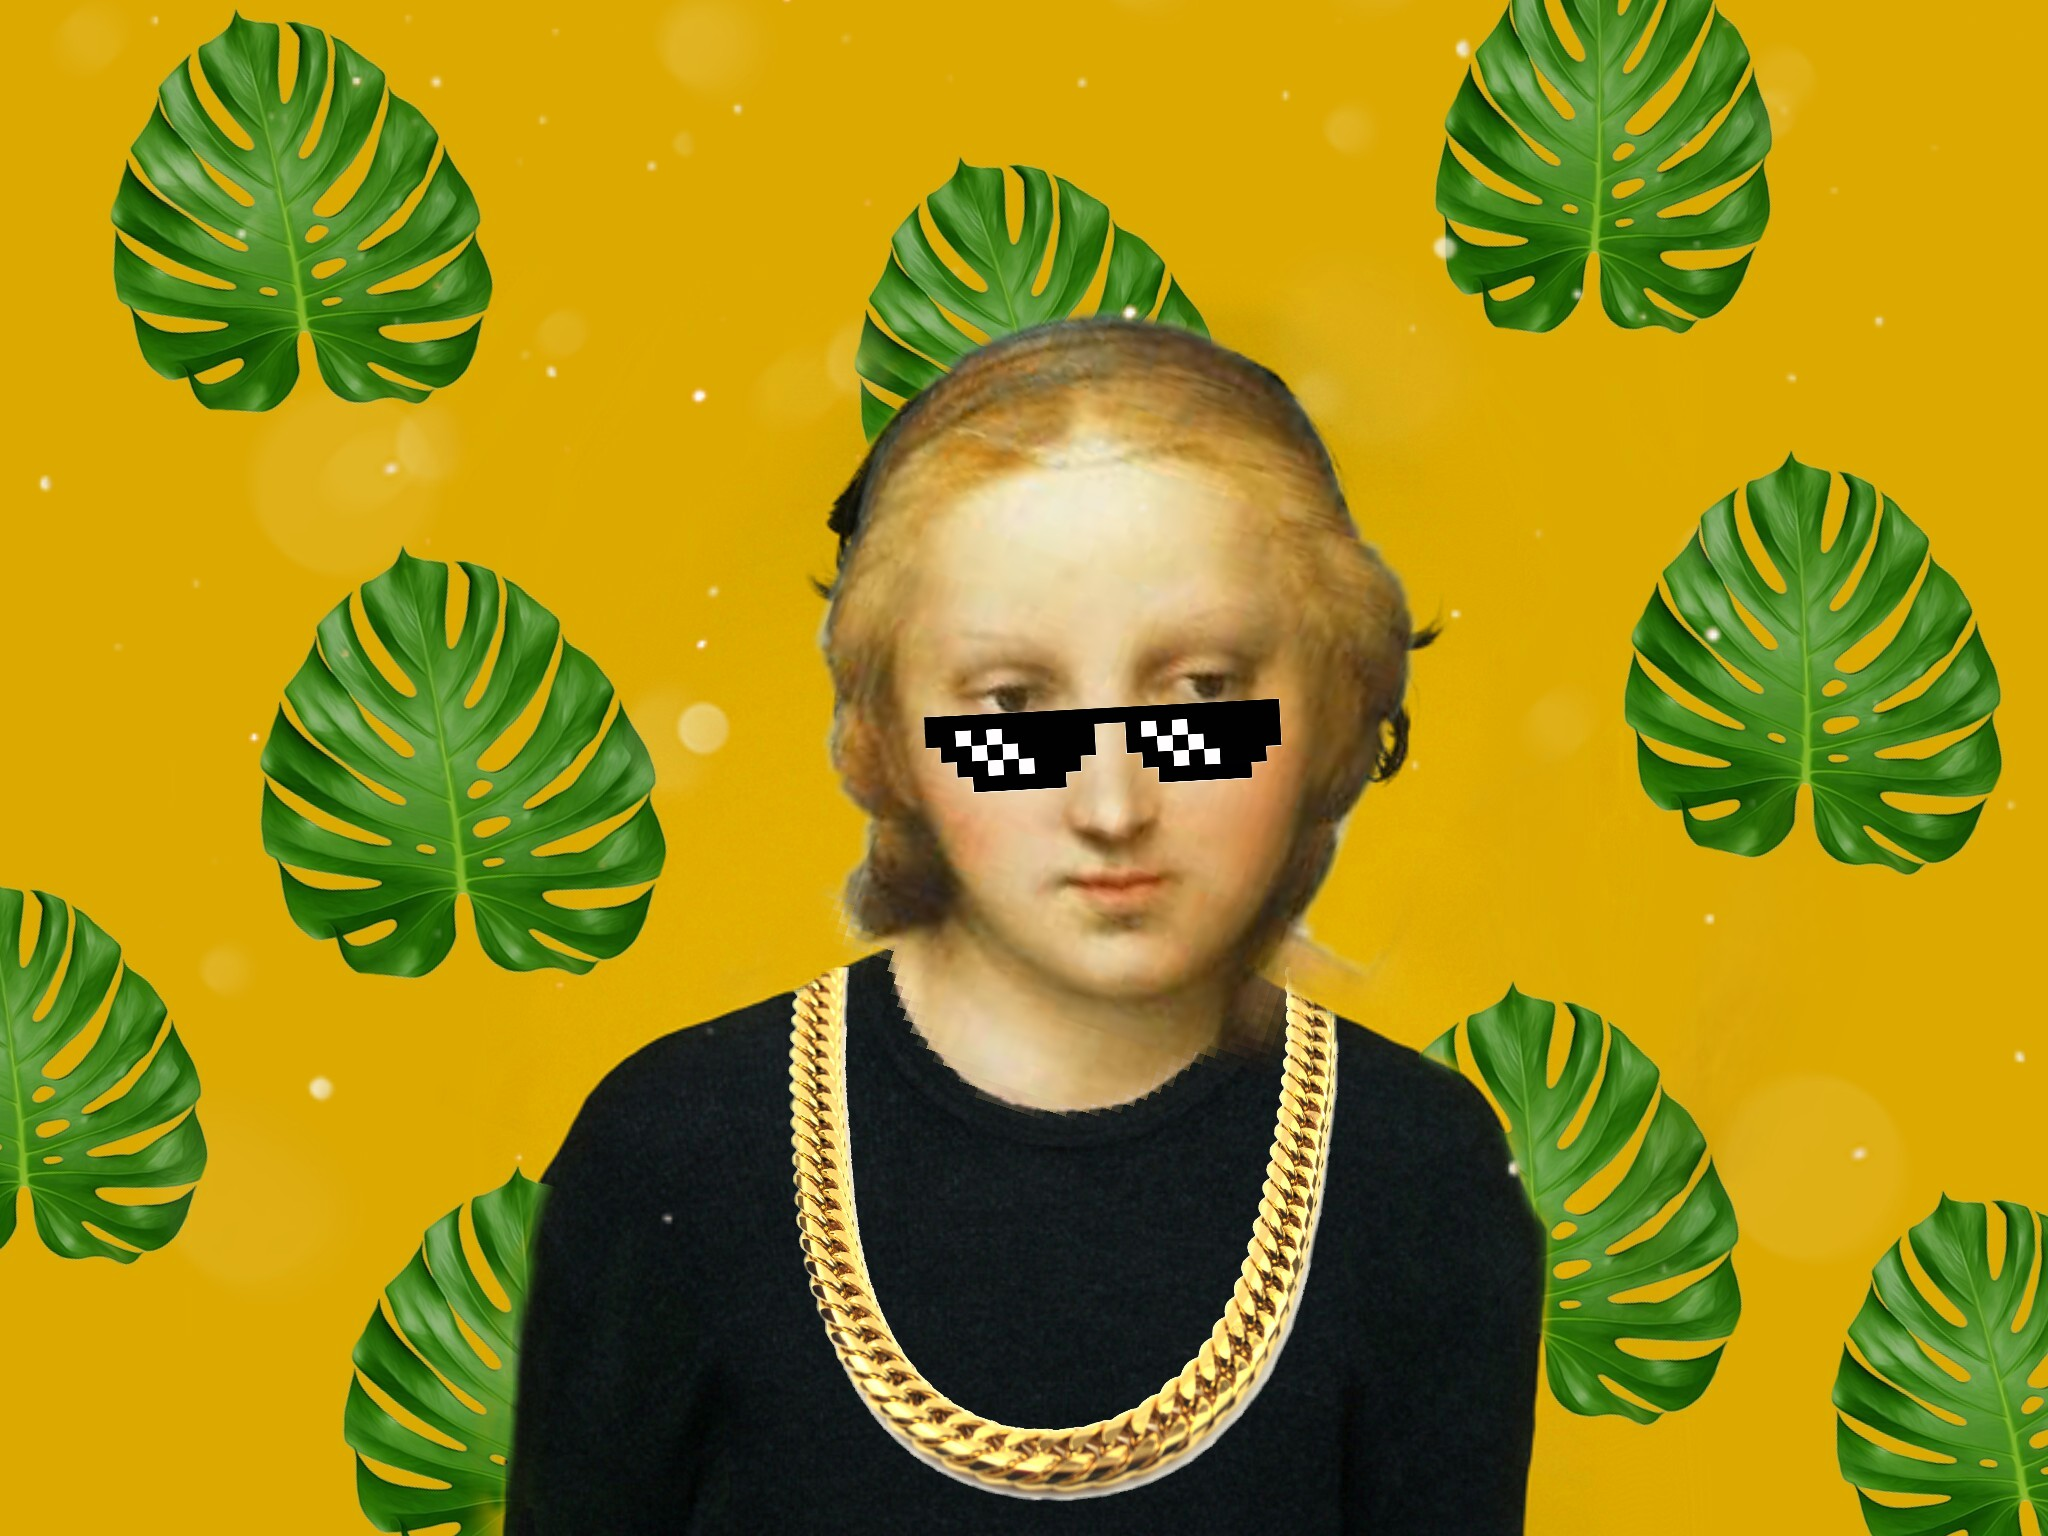 #freetoedit #renaissanceremix #renaissance #girl #gangsta #leaves #sunglasses #glasses #necklace #drawing #classic #thuglife